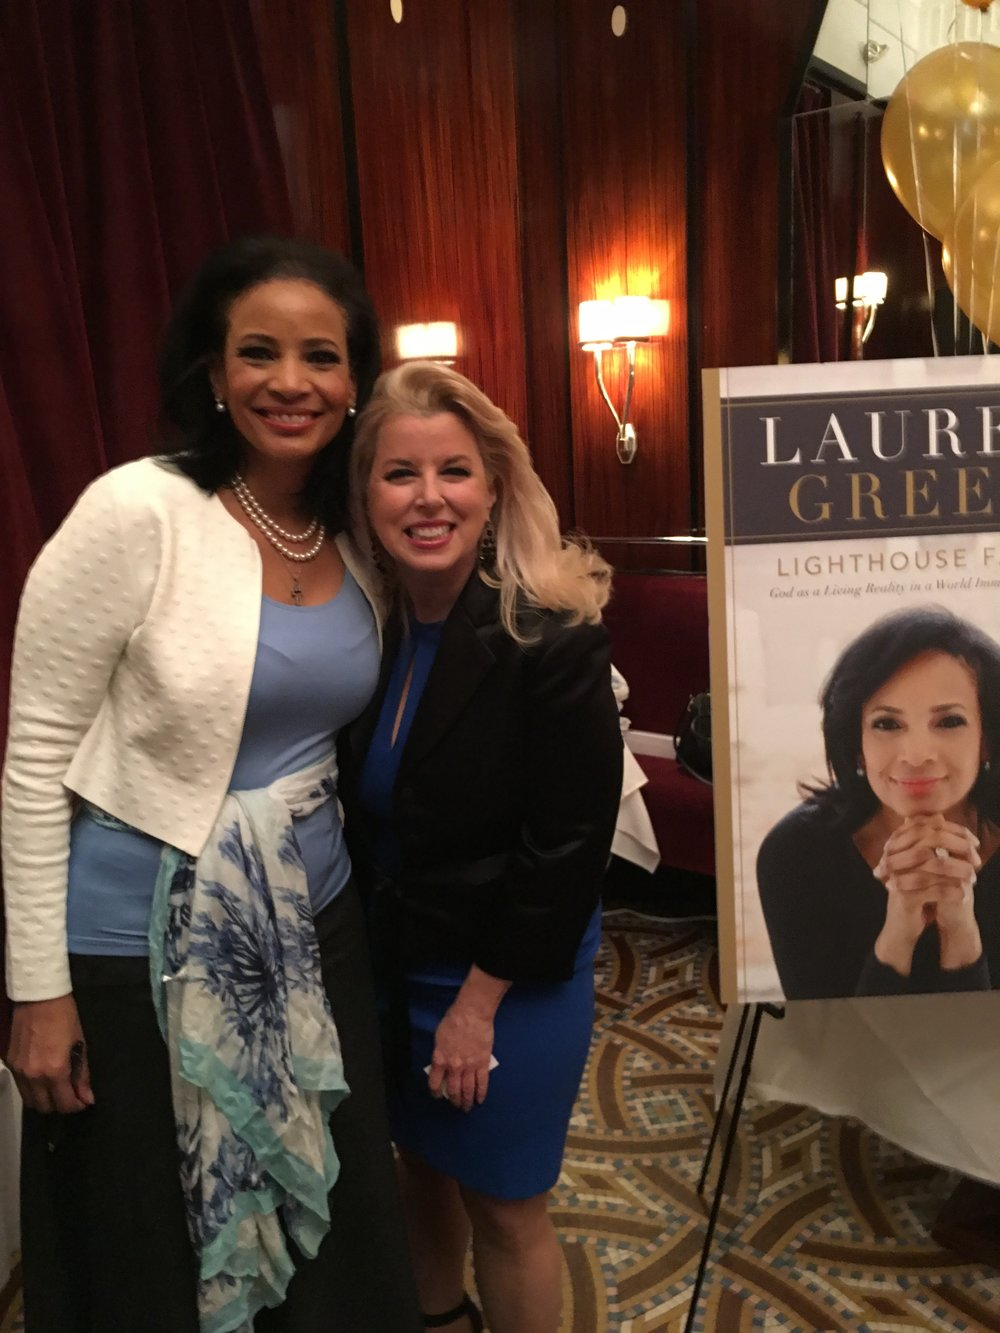 Lauren Green and WABC radio show host and author Rita Cosby.